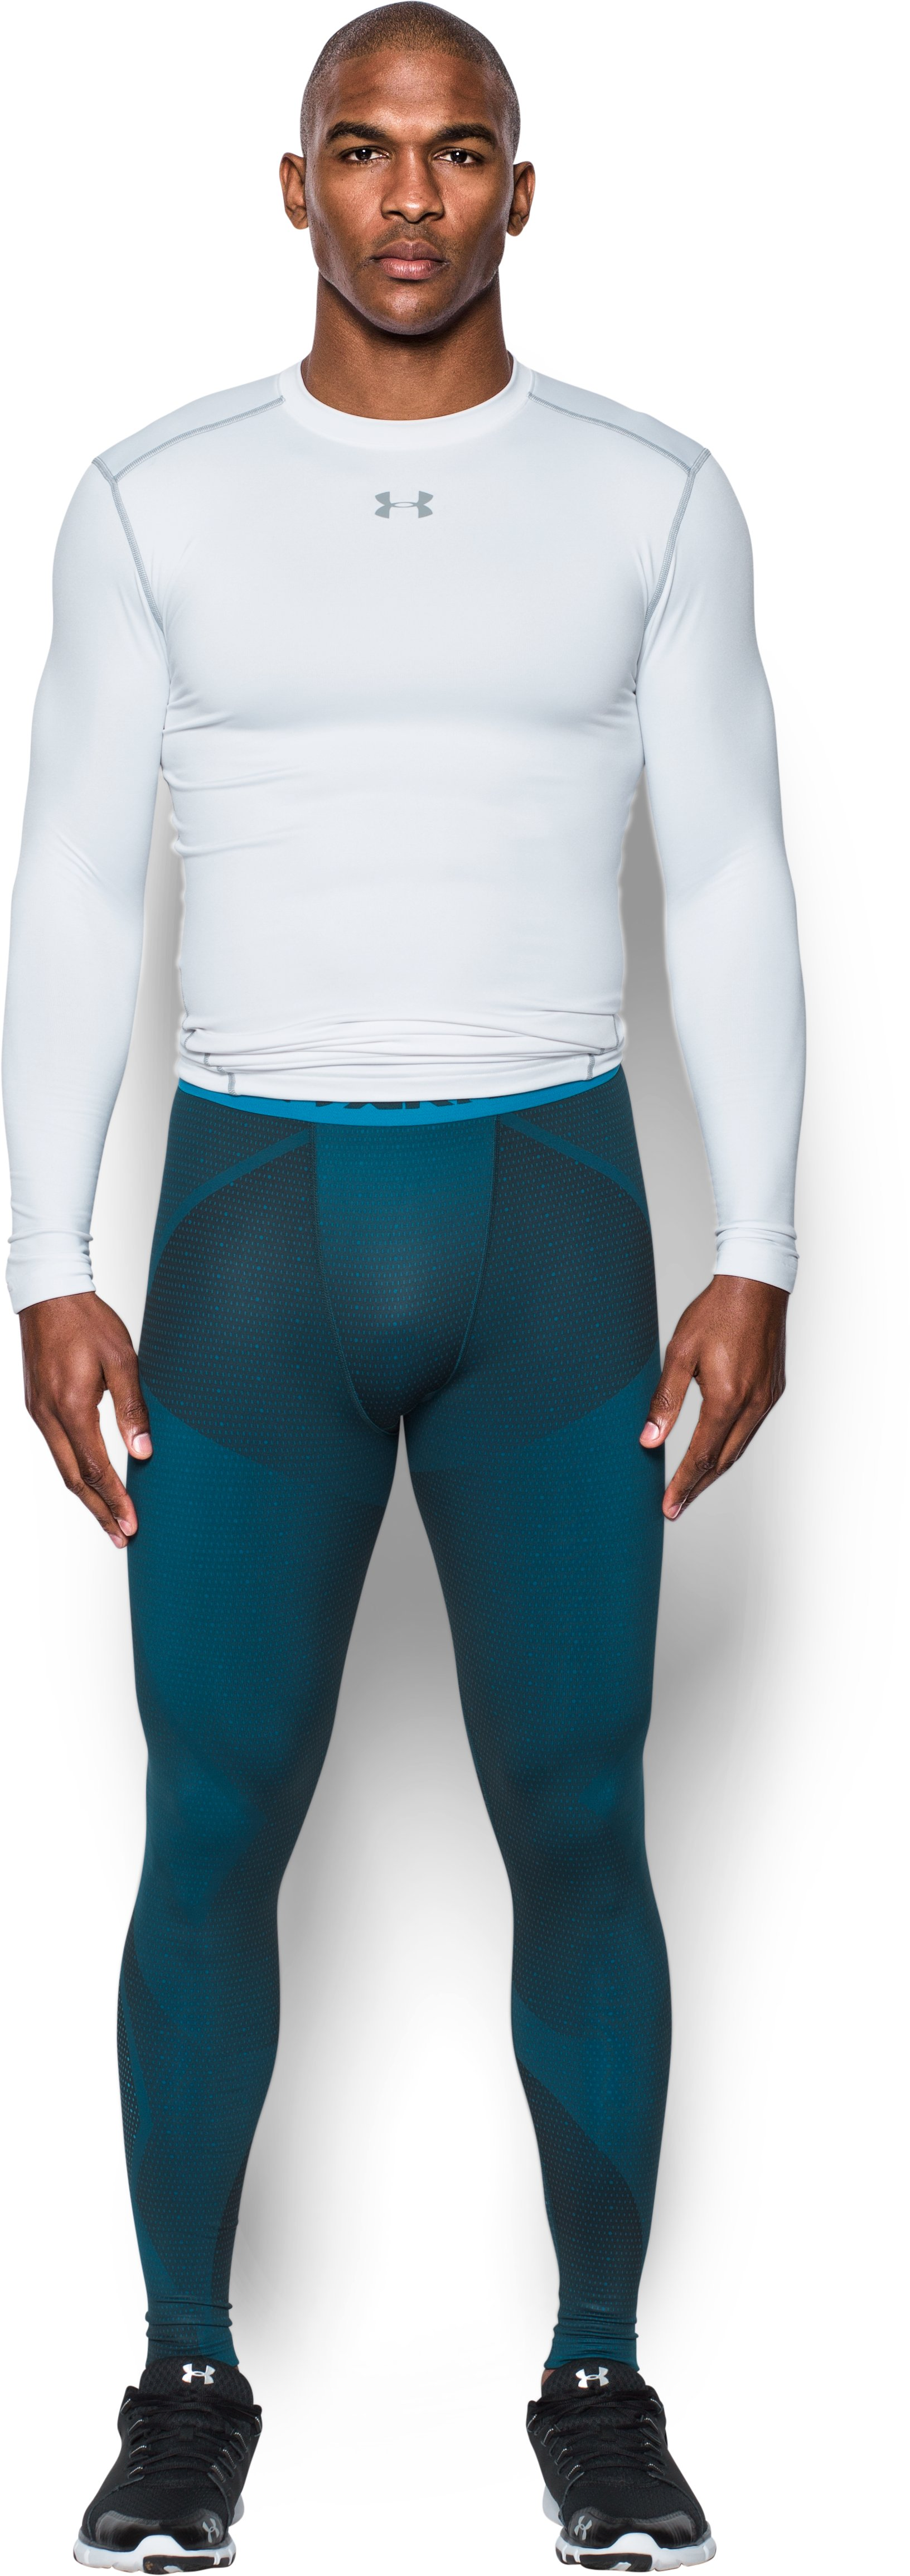 Men's ColdGear® Armour Sublimated Leggings, NOVA TEAL, Front